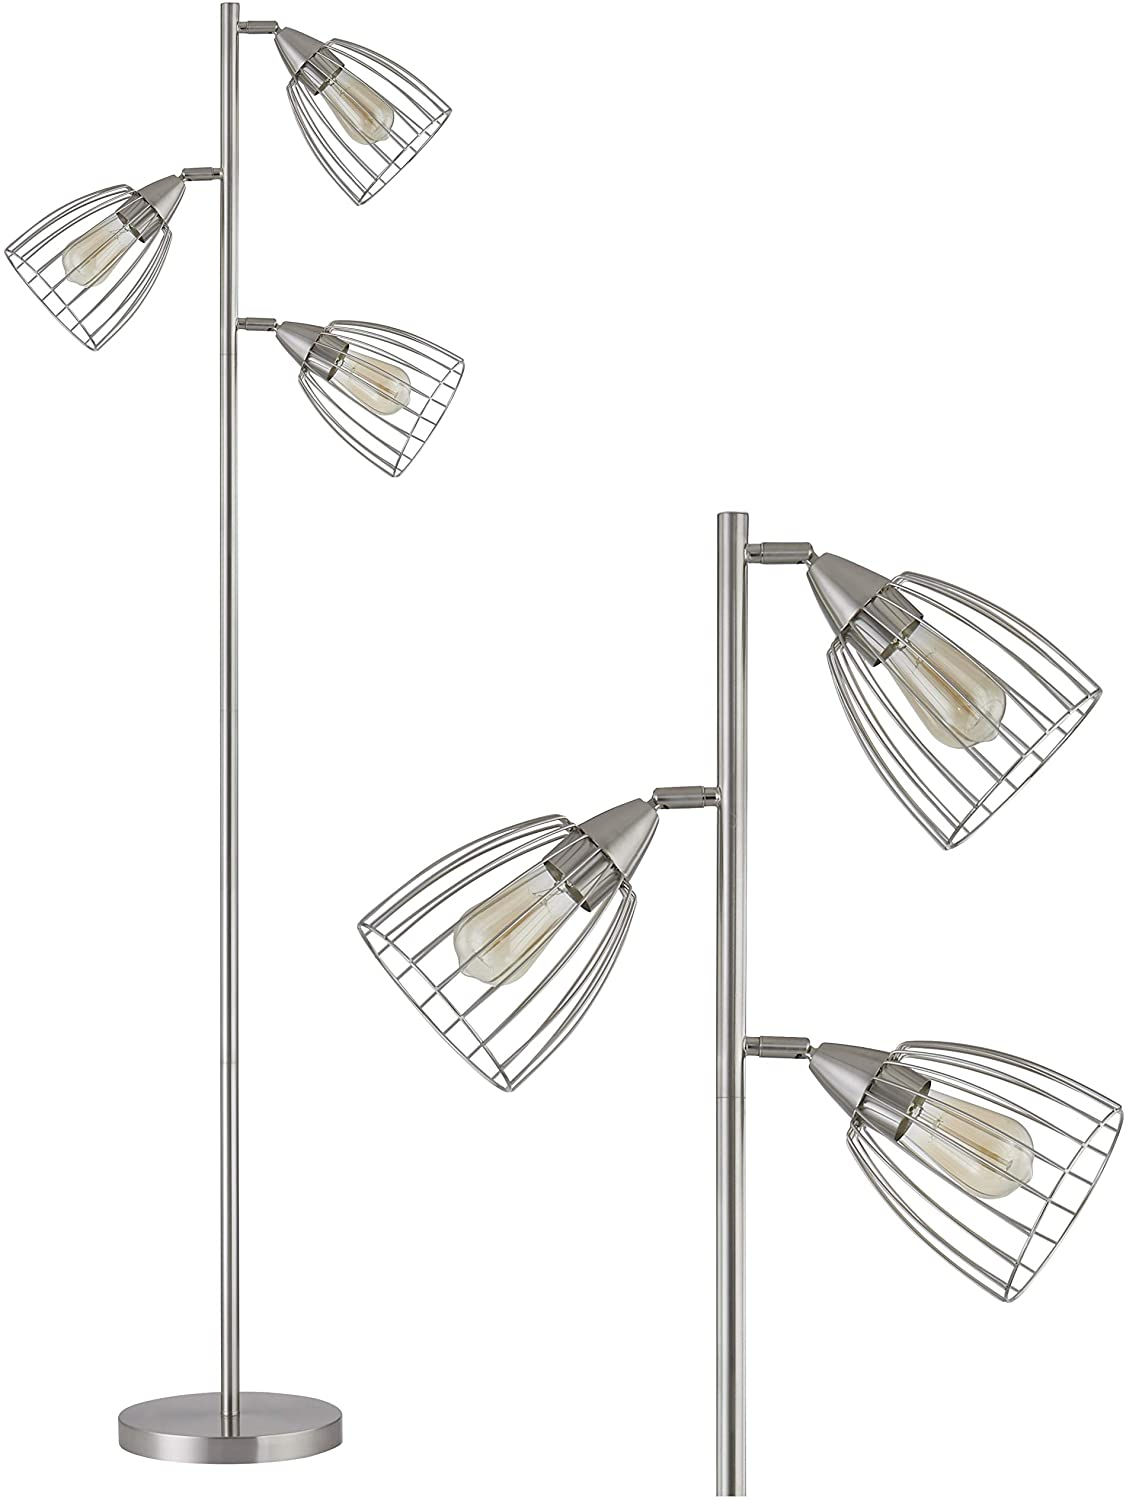 WOXXX Industrial Floor Lamp for Living Room Bright Lighting Tall Stand Up Lamp Farmhouse Rustic Modern Tree Floor Lamps for Bedrooms, Office with Reading Light Standing Lamp Chrome(3 Bulbs Included)